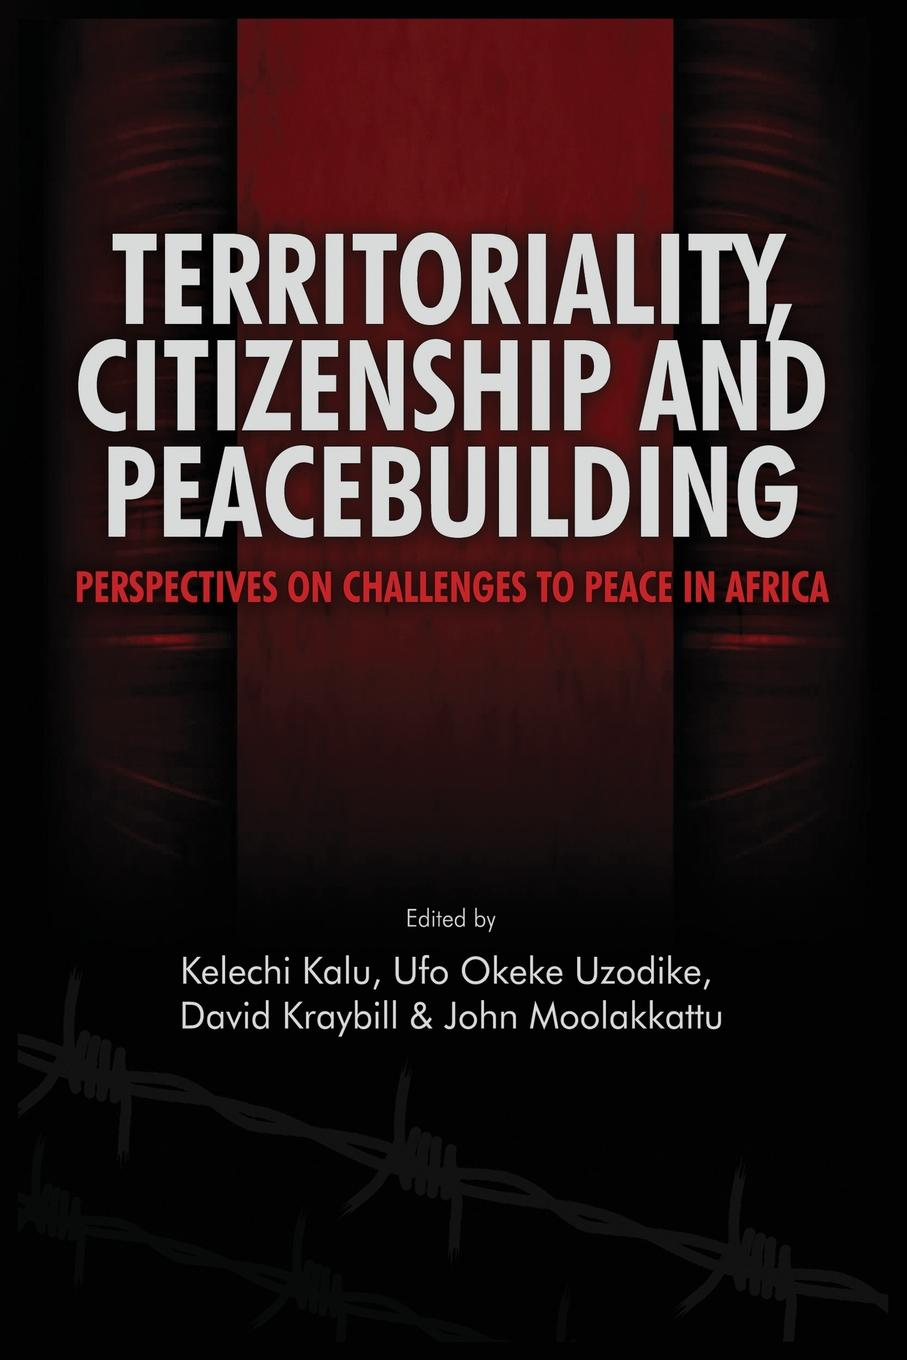 Territoriality, Citizenship and Peacebuilding. Perspectives on Challenges to Peace in Africa climate change and poverty in sub saharan africa